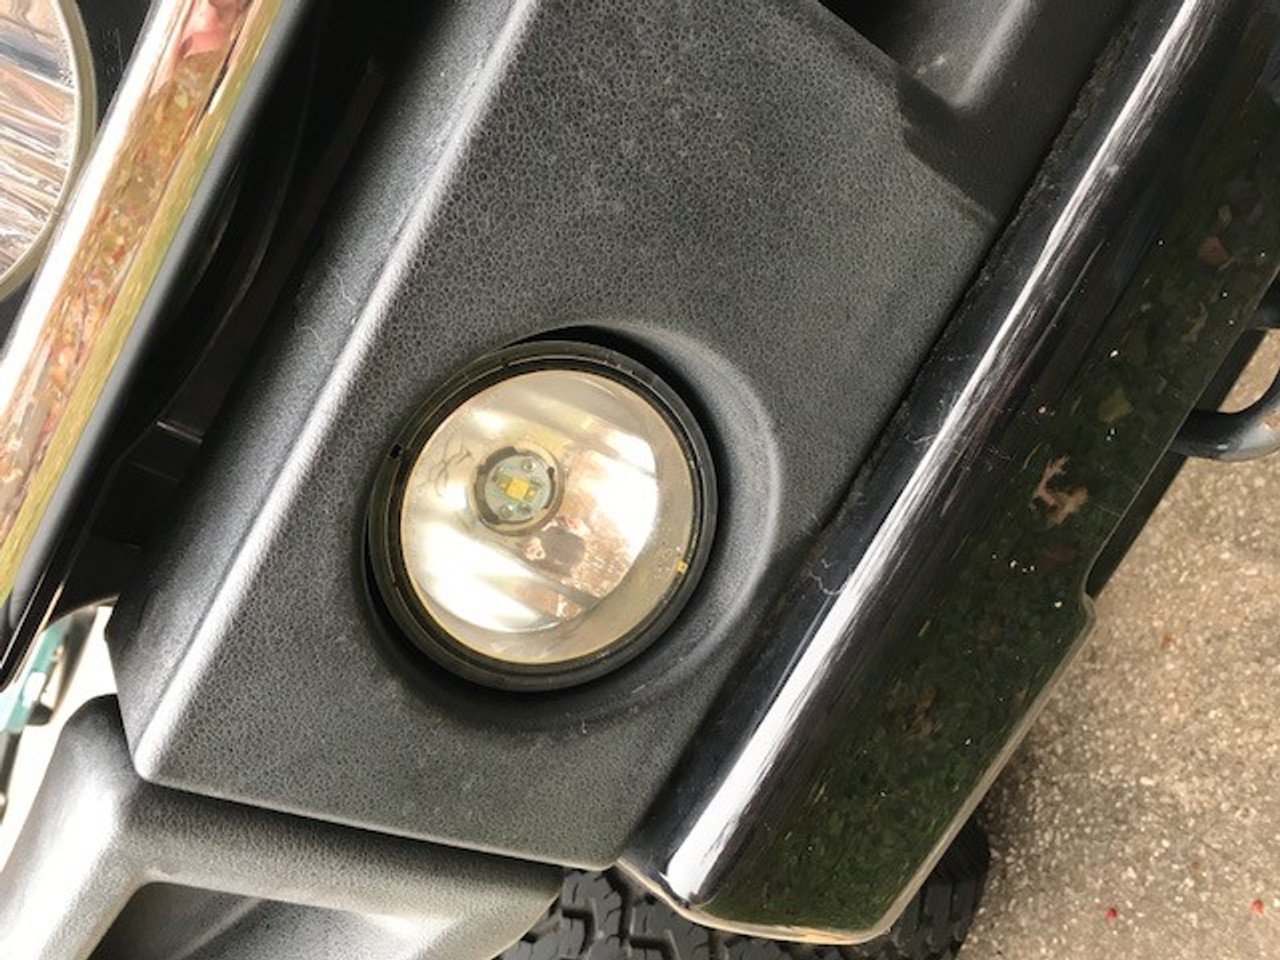 H2 Hummer Lights for DRL and Off-Road HDRL001